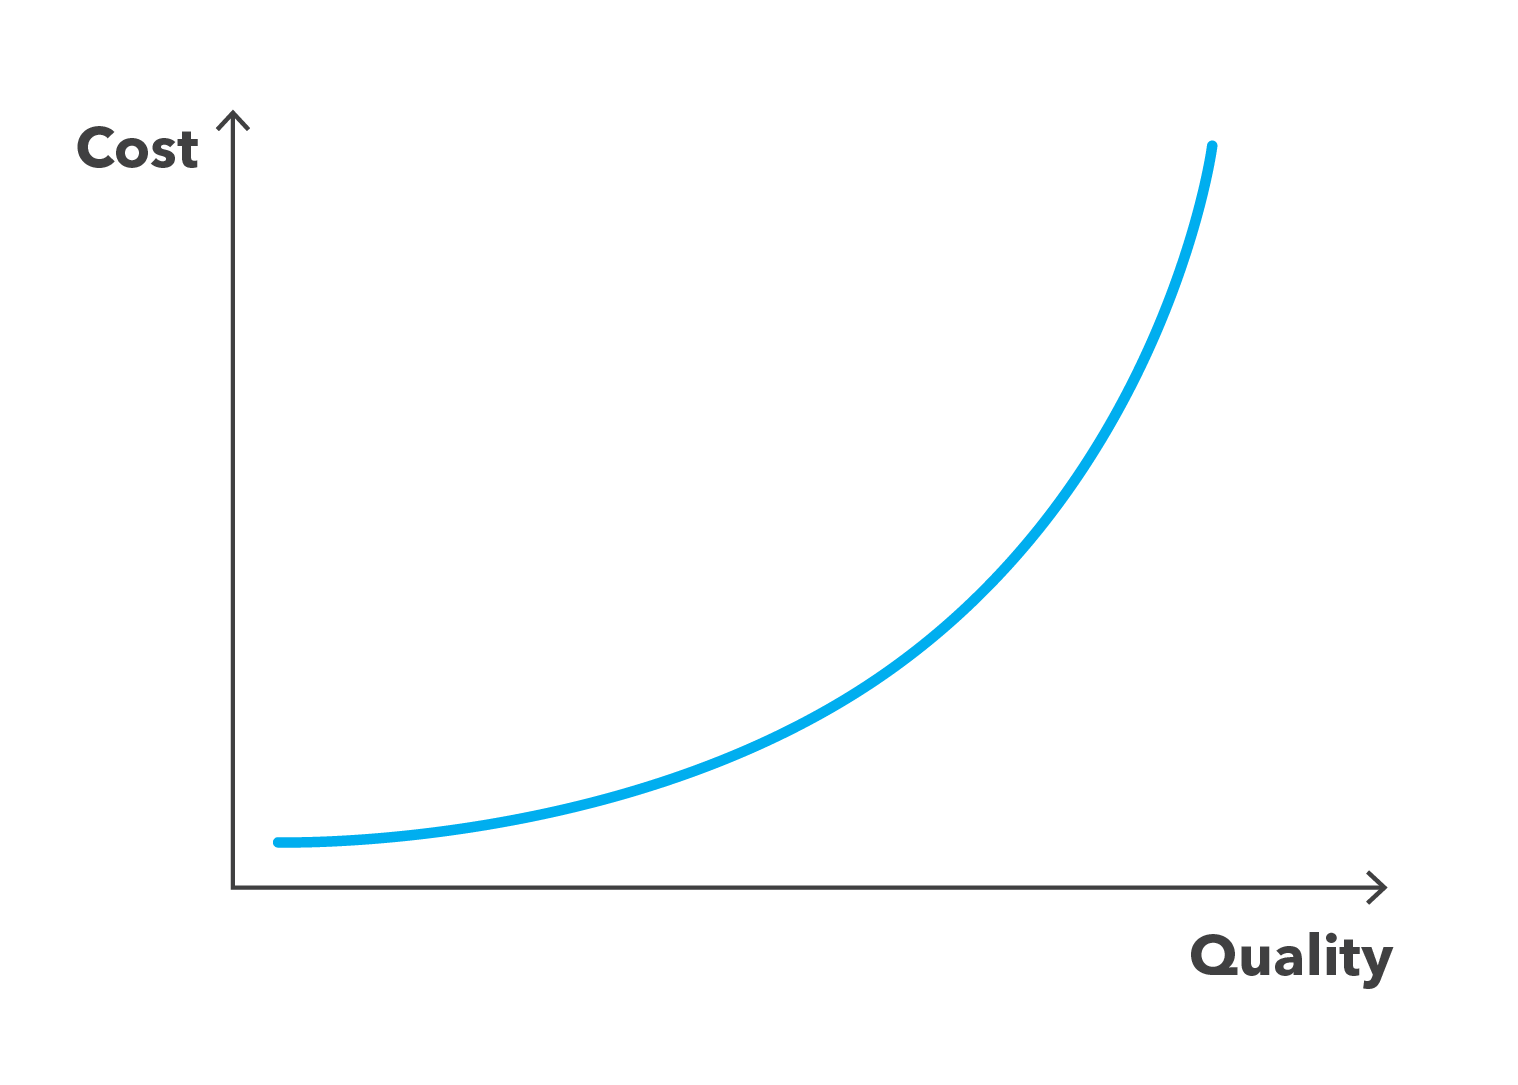 Graph showing exponential curve with quality on x axis and cost on y axis